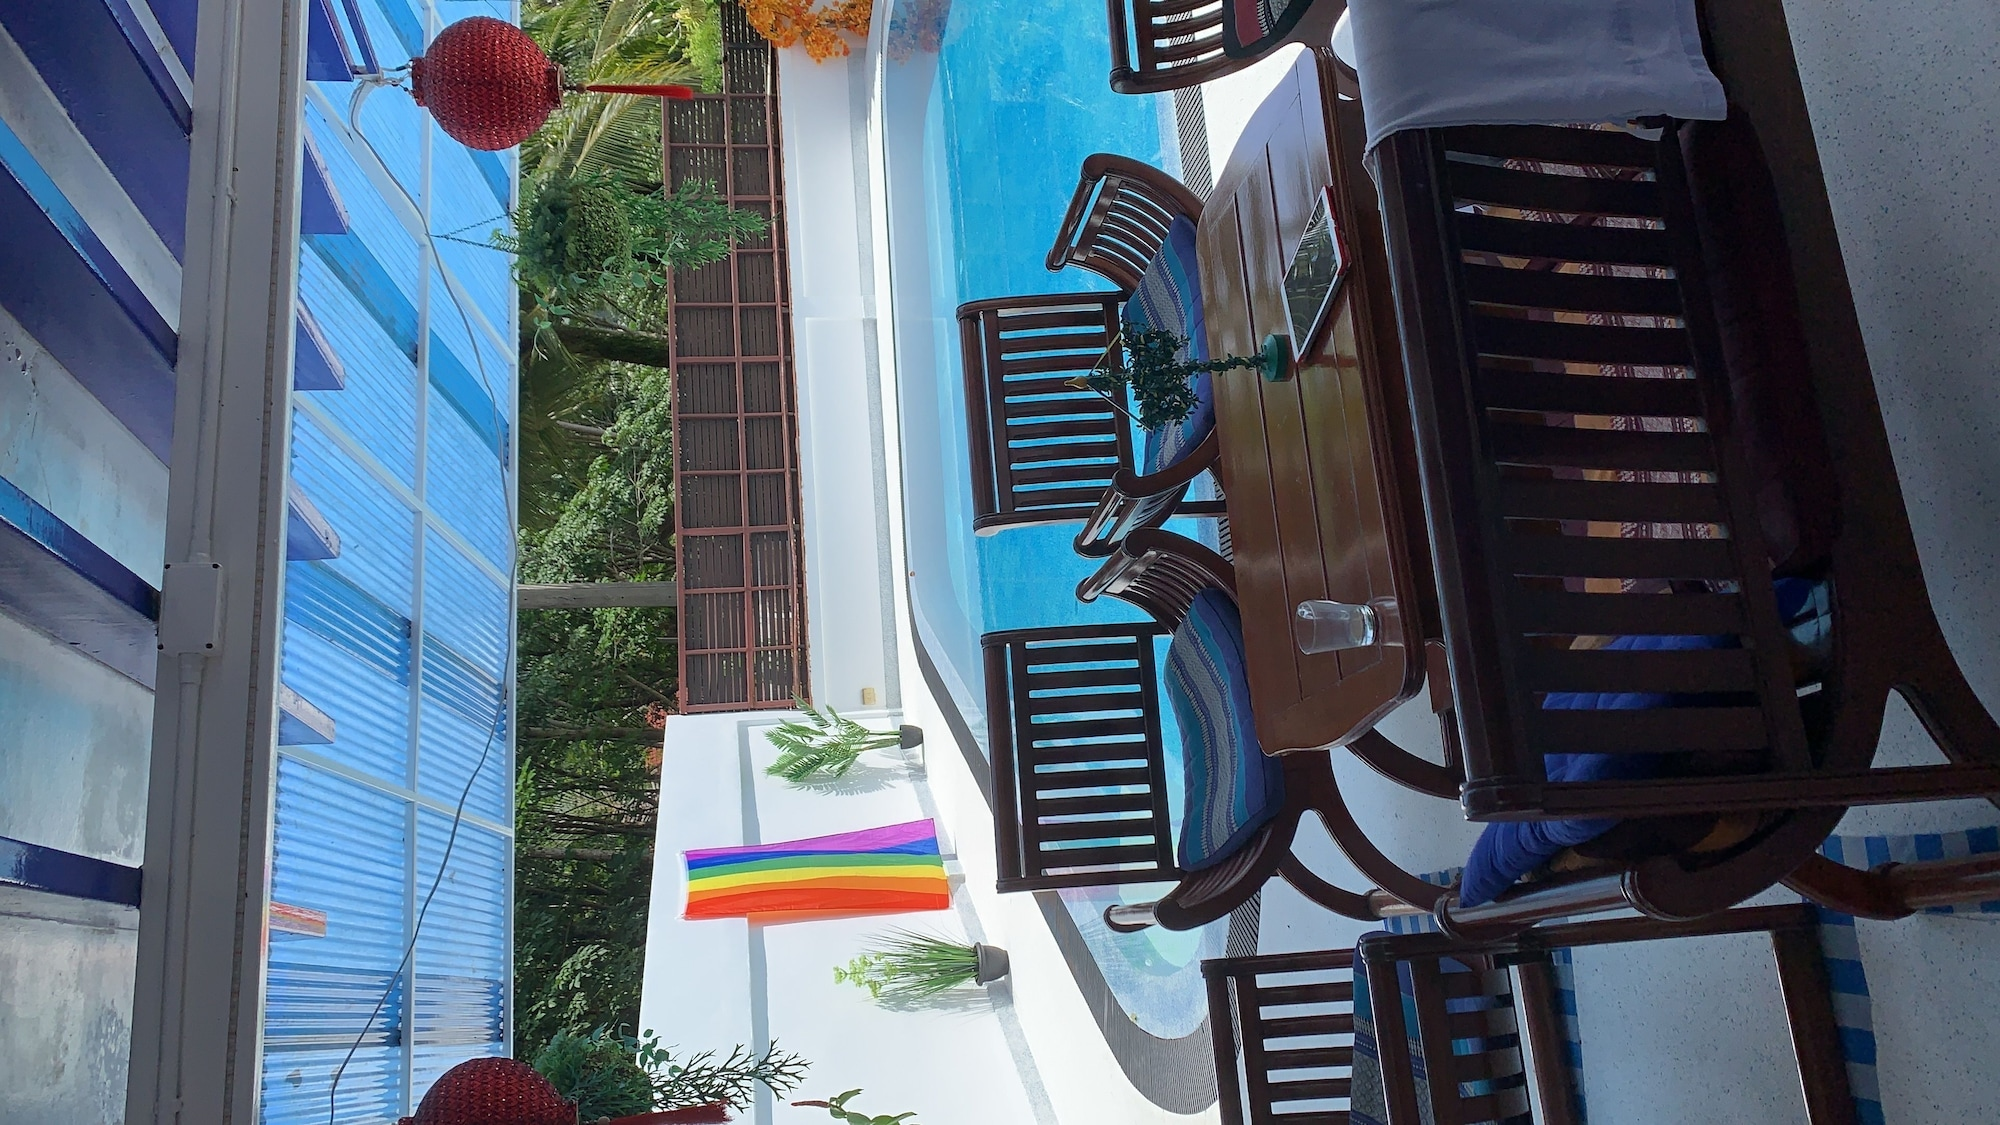 Phuket Gay Home Stay - Caters to Men, Pulau Phuket